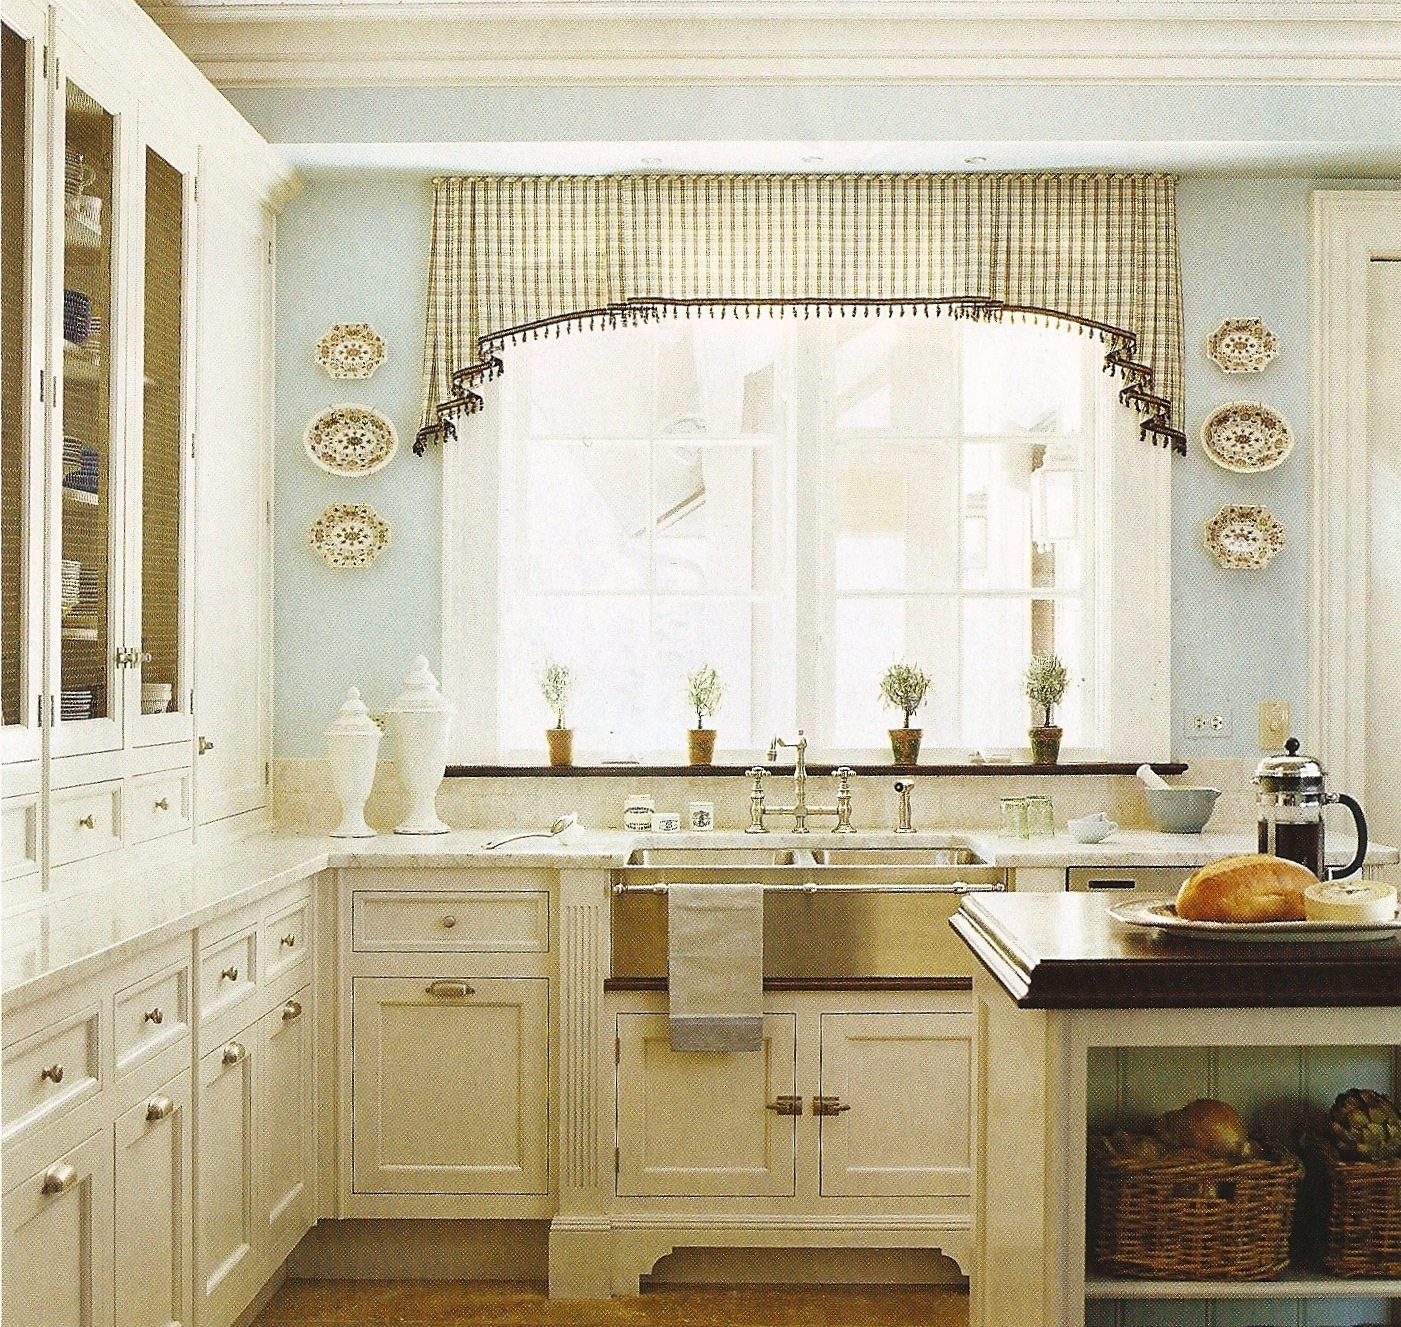 Wood Valance Over Kitchen Sink: Design Dump: White Kitchen + Wood Countertops